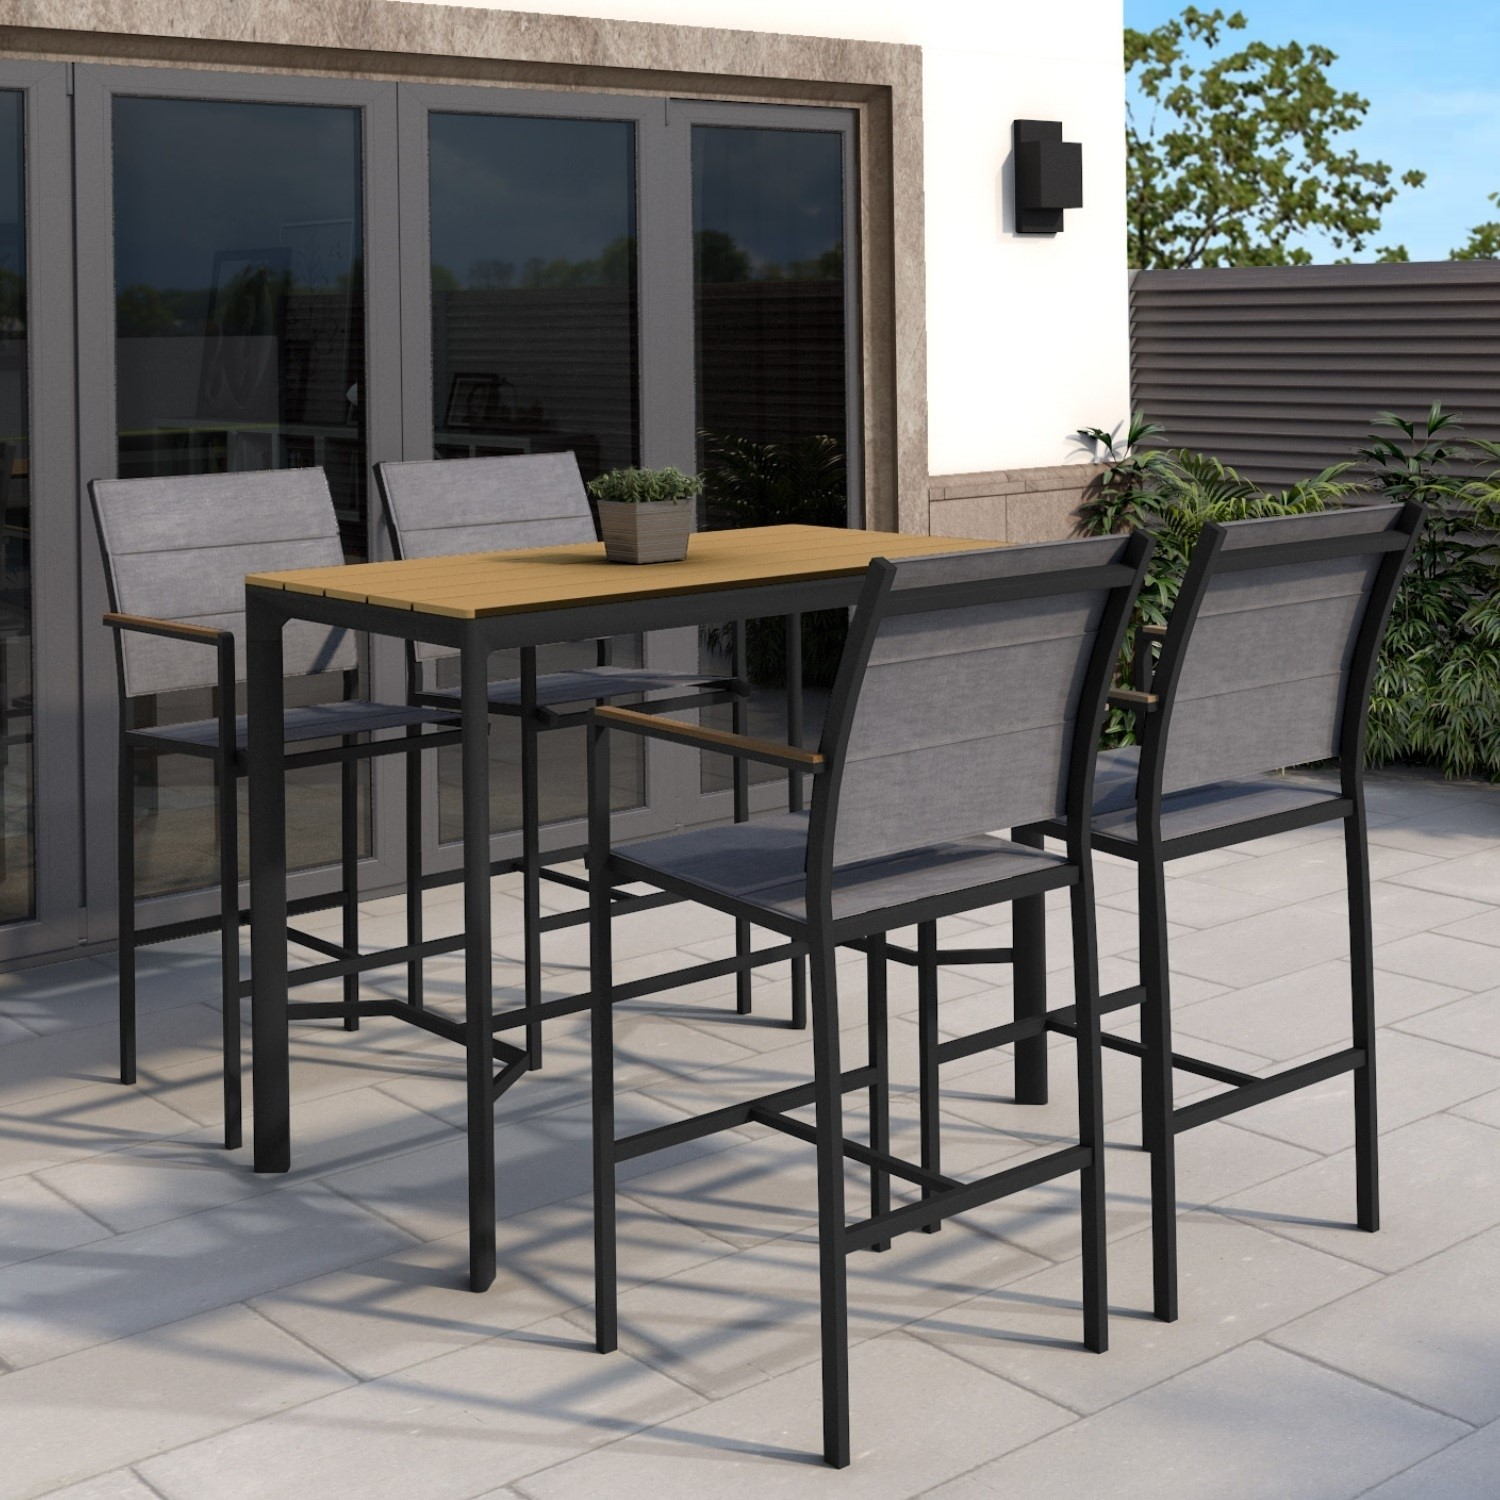 Picture of: Black Outdoor Bar Set With 4 Bar Stools Como Furniture123